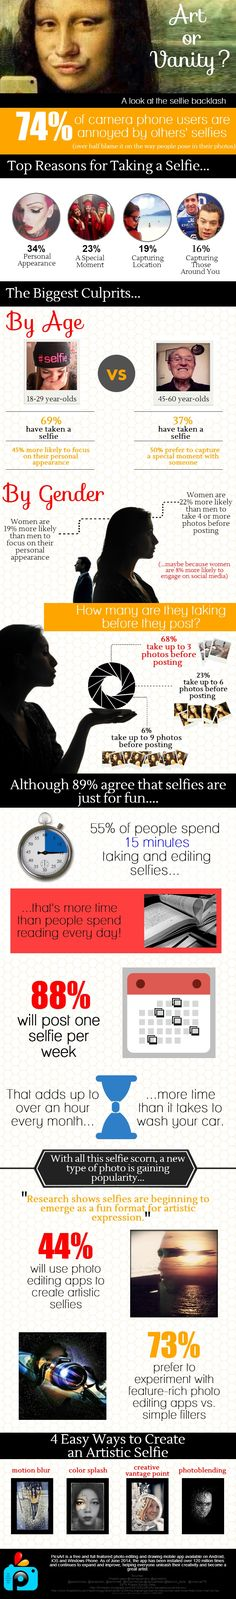 Art or Vanity? A Look at the Selfie Backlash   #infographic #SocialMedia #Selfie